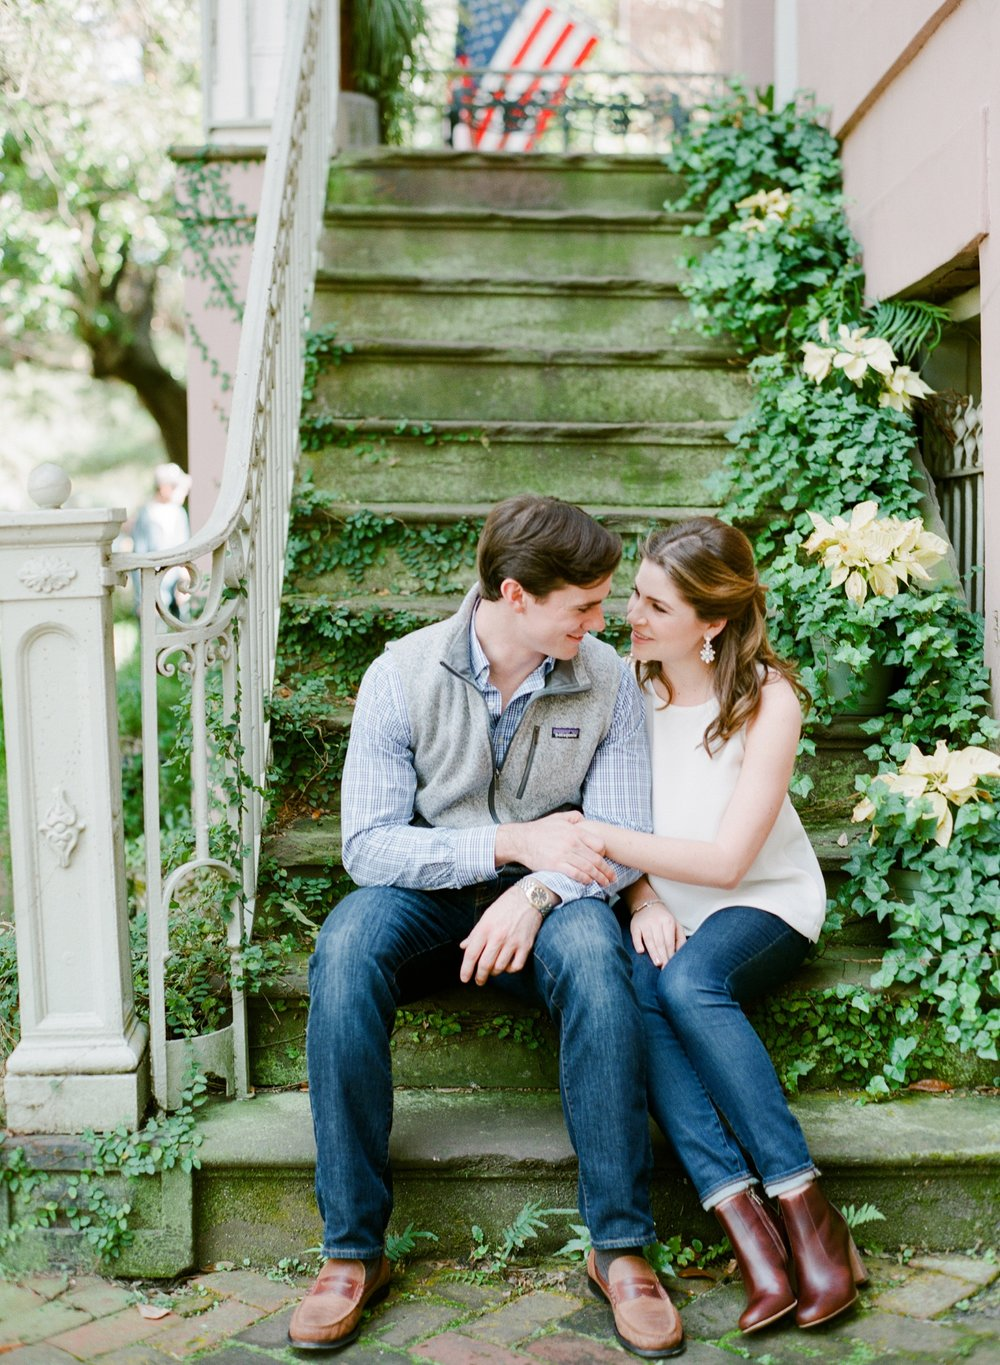 Jones-Street-Engagement-Session-Savannah_0058.jpg